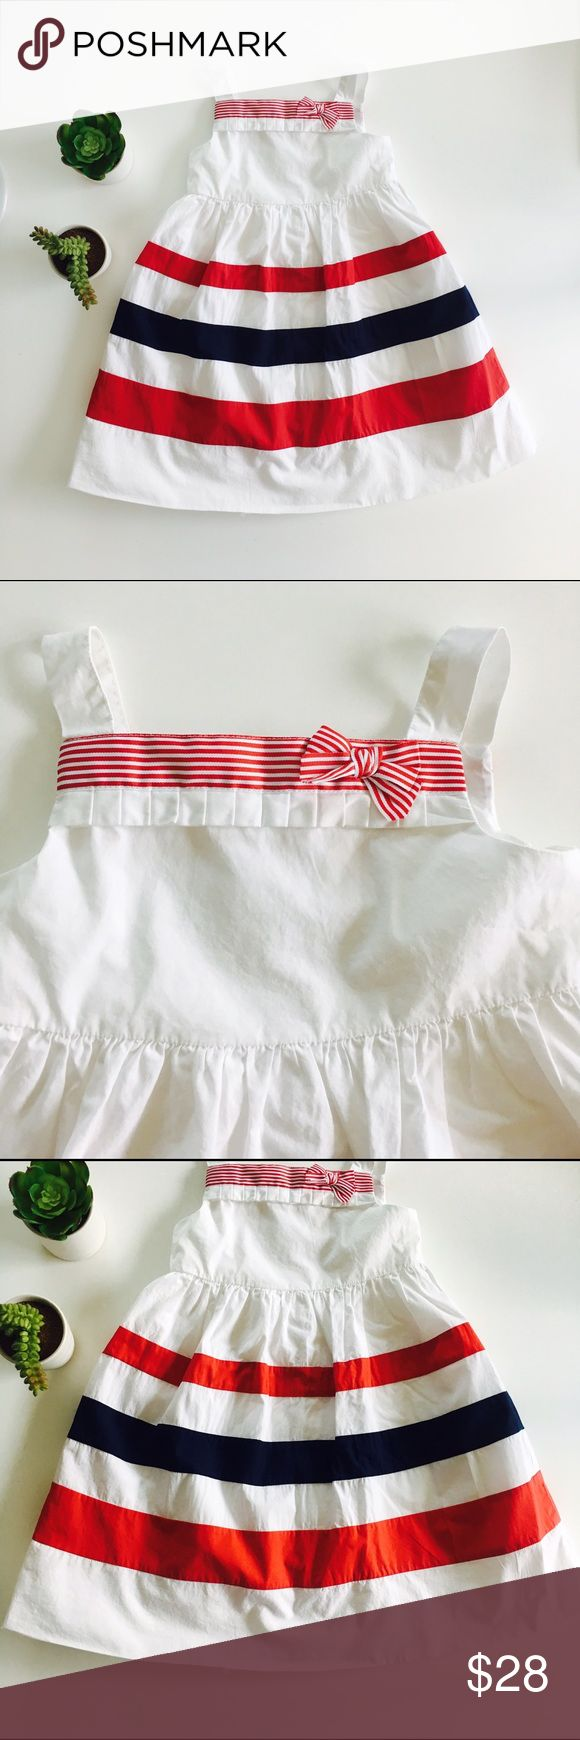 [girls] Janie and Jack dress Janie and Jack dress in white with red and blue accents. Back button closure. Lined. In excellent condition but hem needs to be fixed. Size 3T. Janie and Jack Dresses